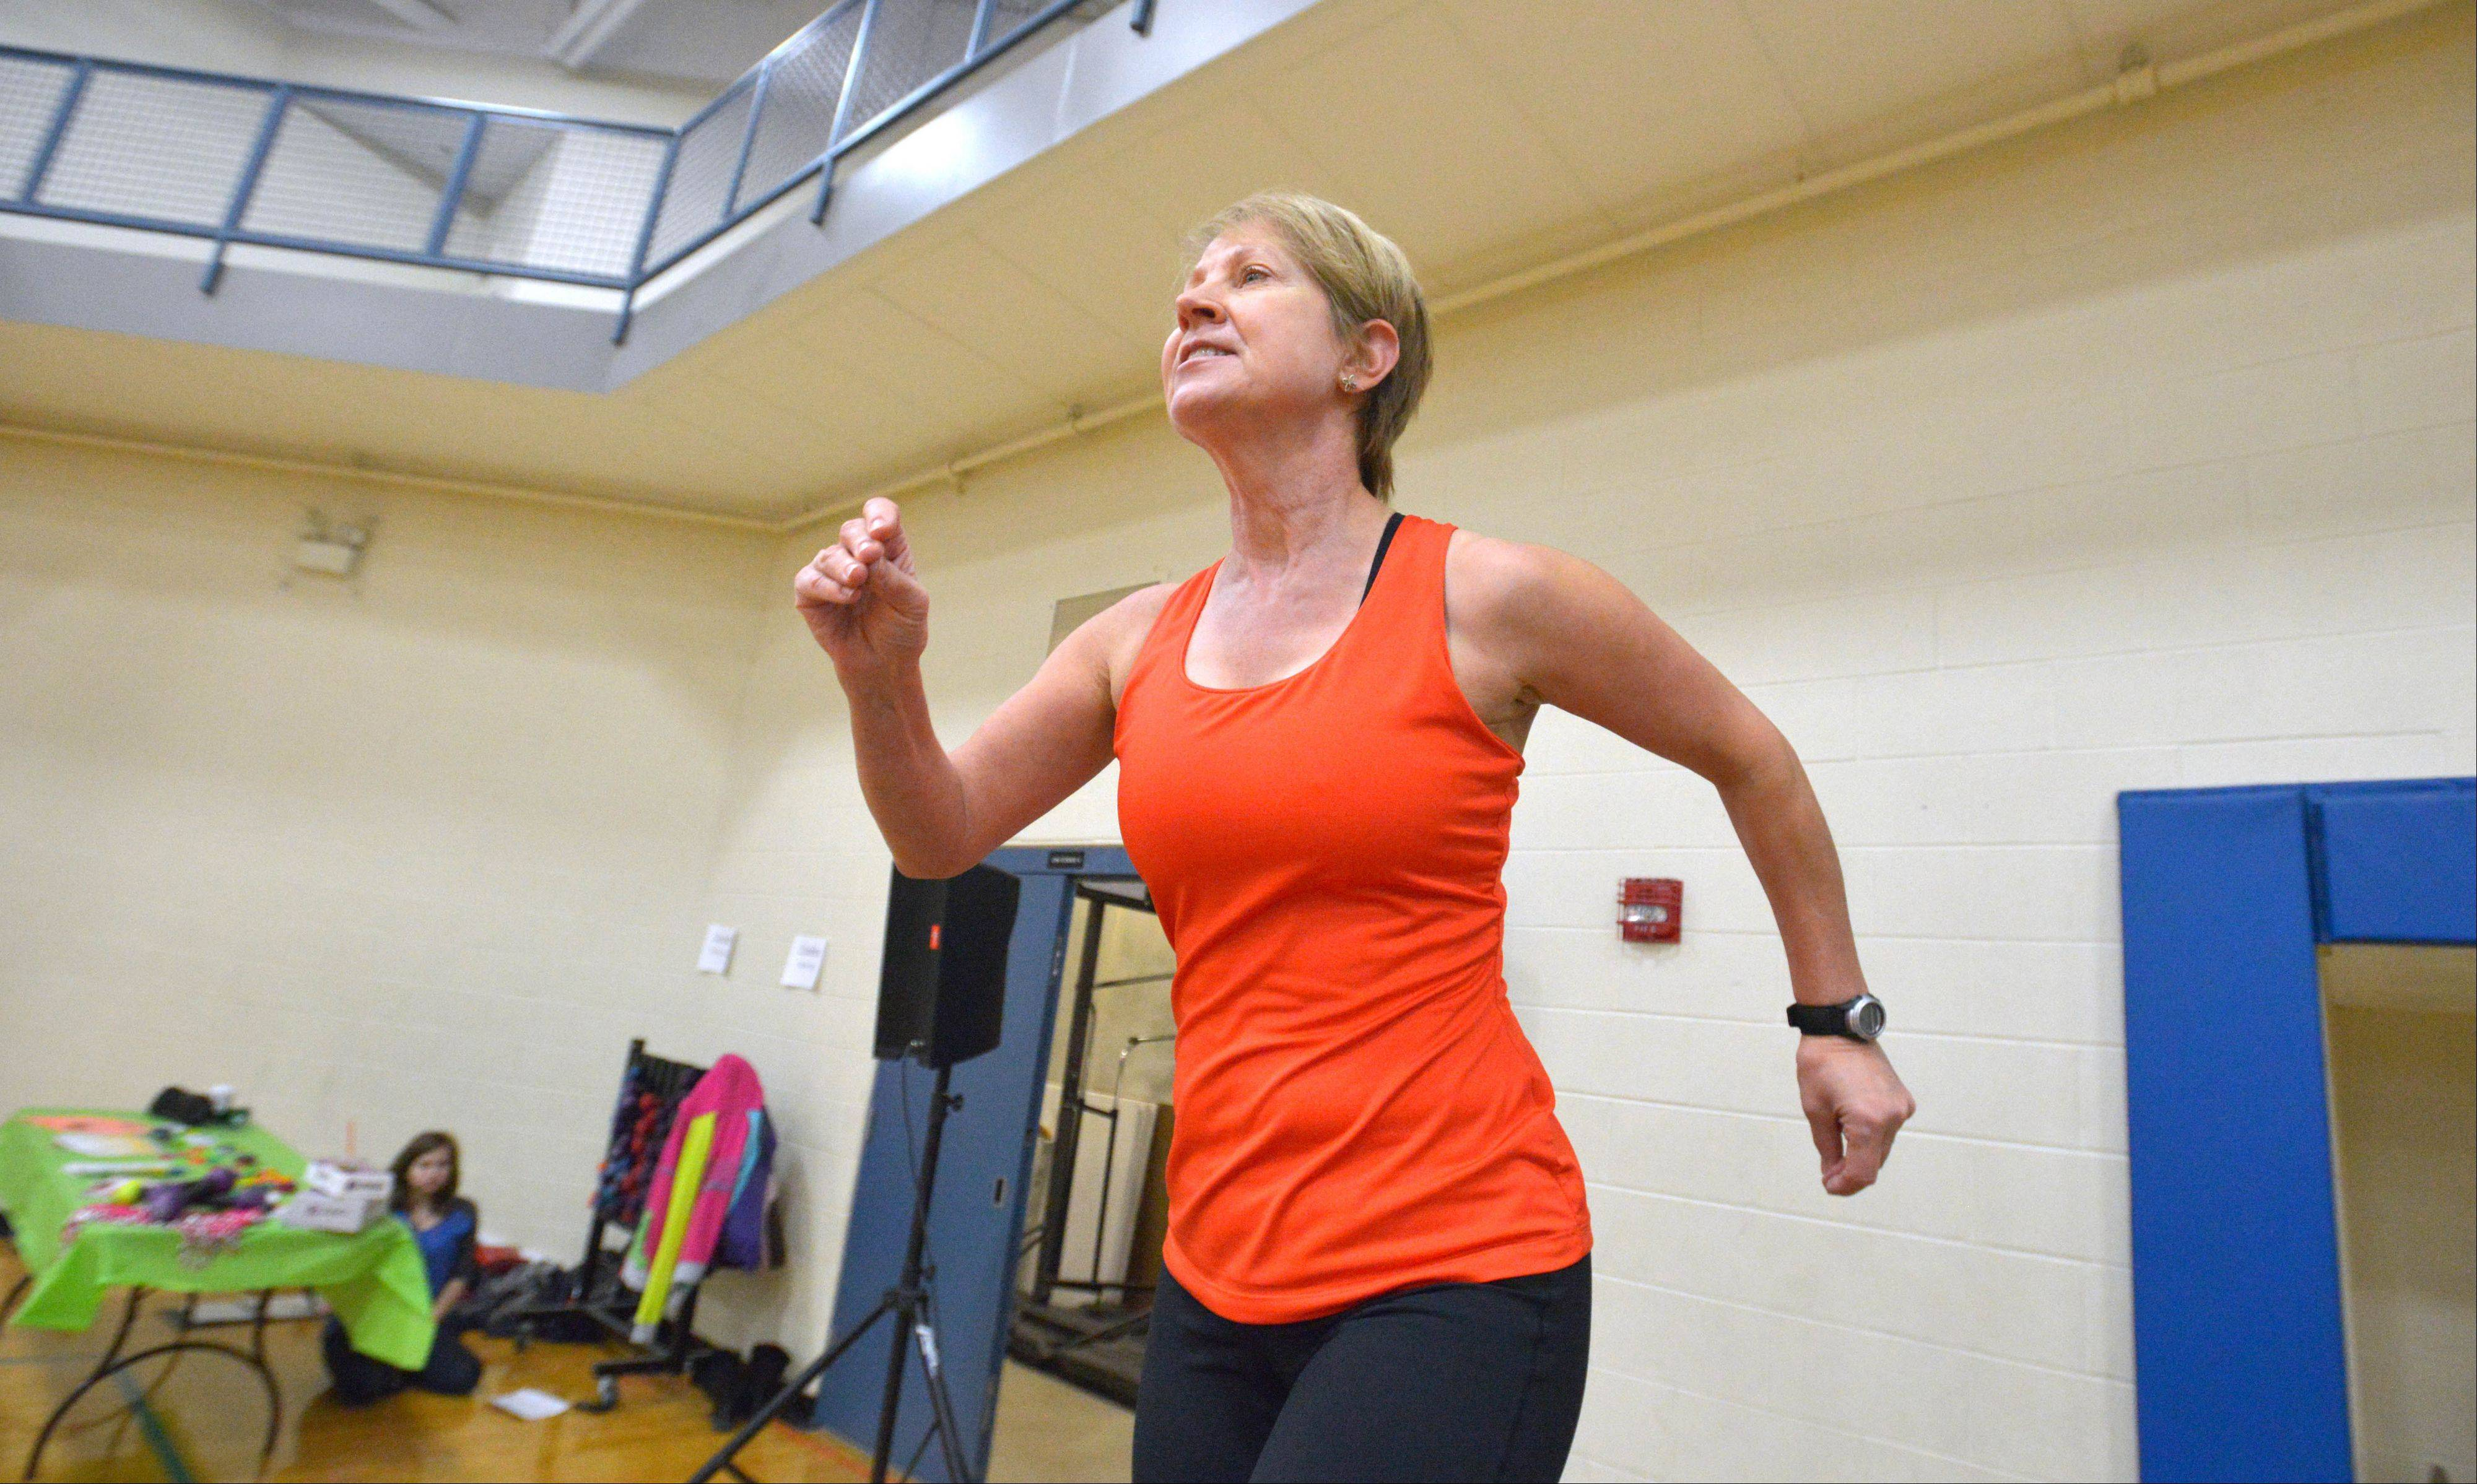 Total Fitness instructor Alice Lively attempts to get the crowd moving during the health and resource fair at the Wood Dale Park District building Saturday.